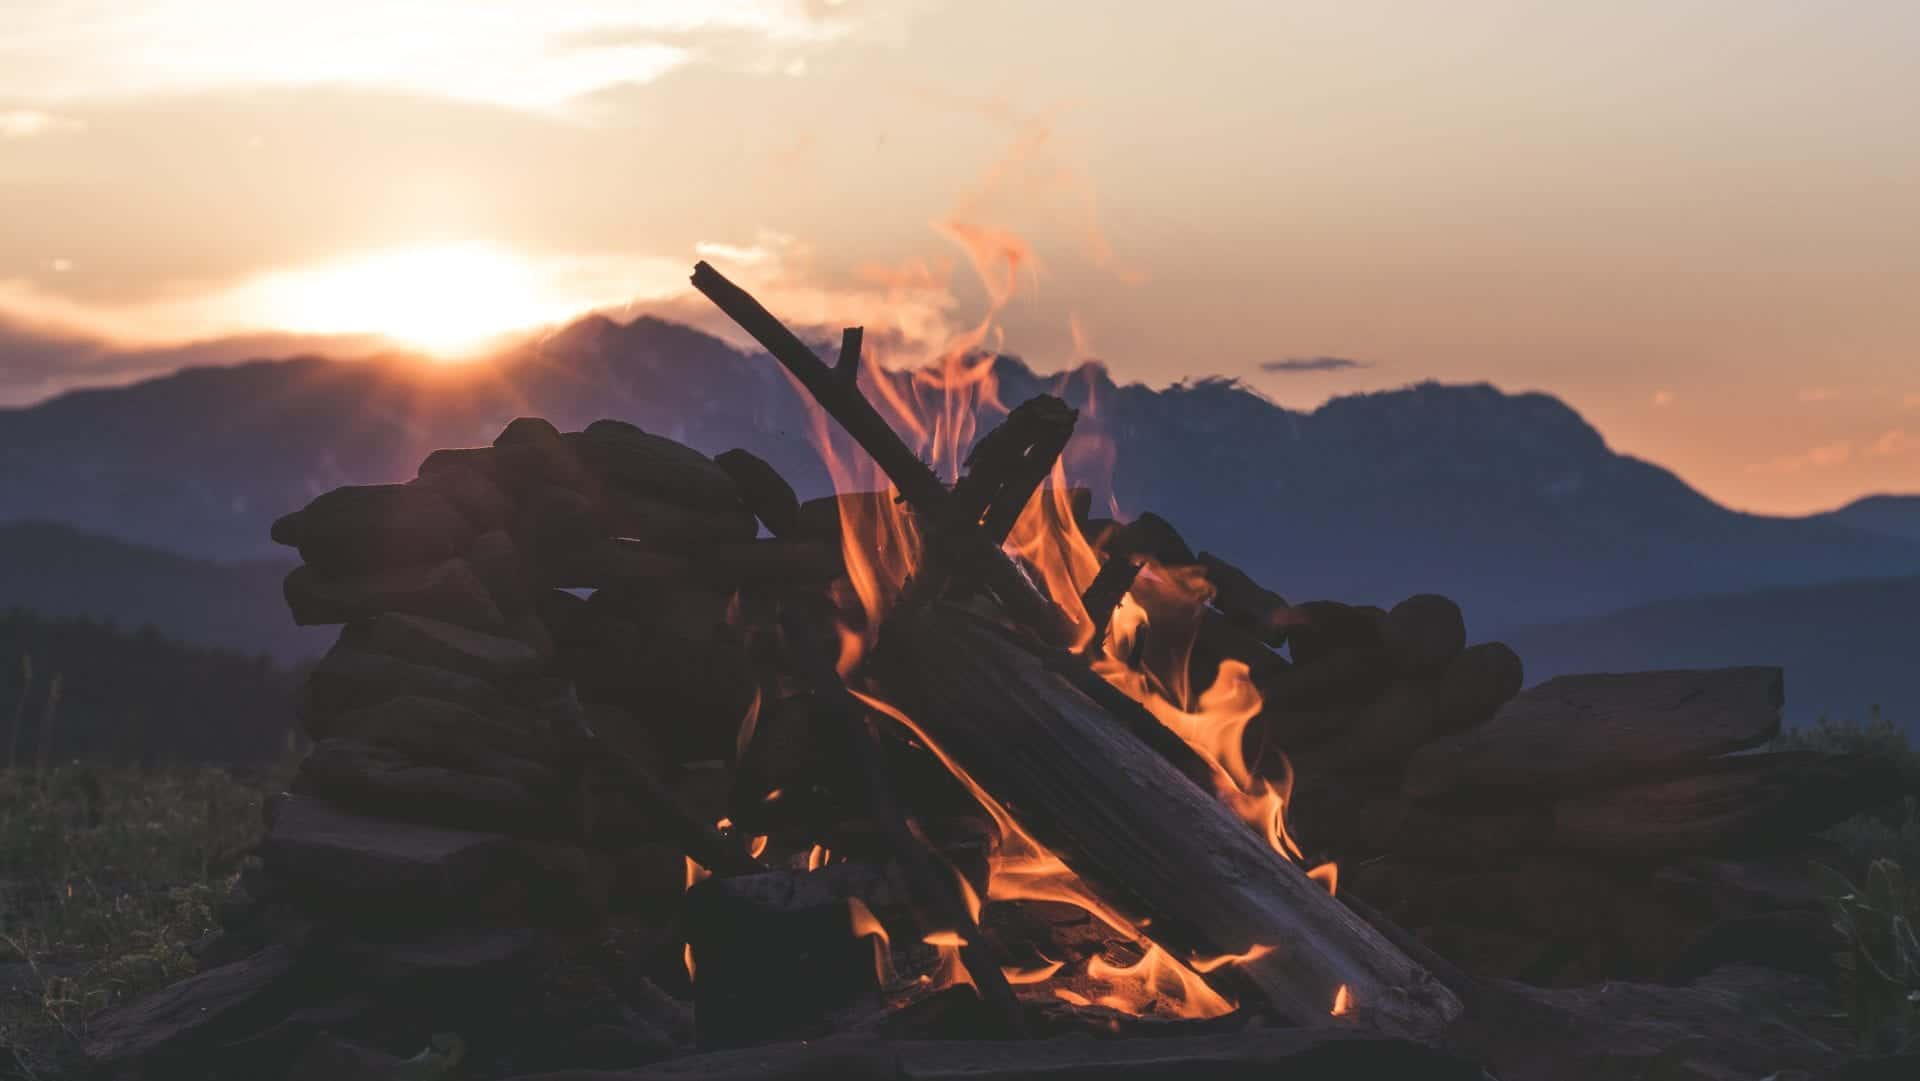 fire mountain colter-olmstead-714900-unsplash